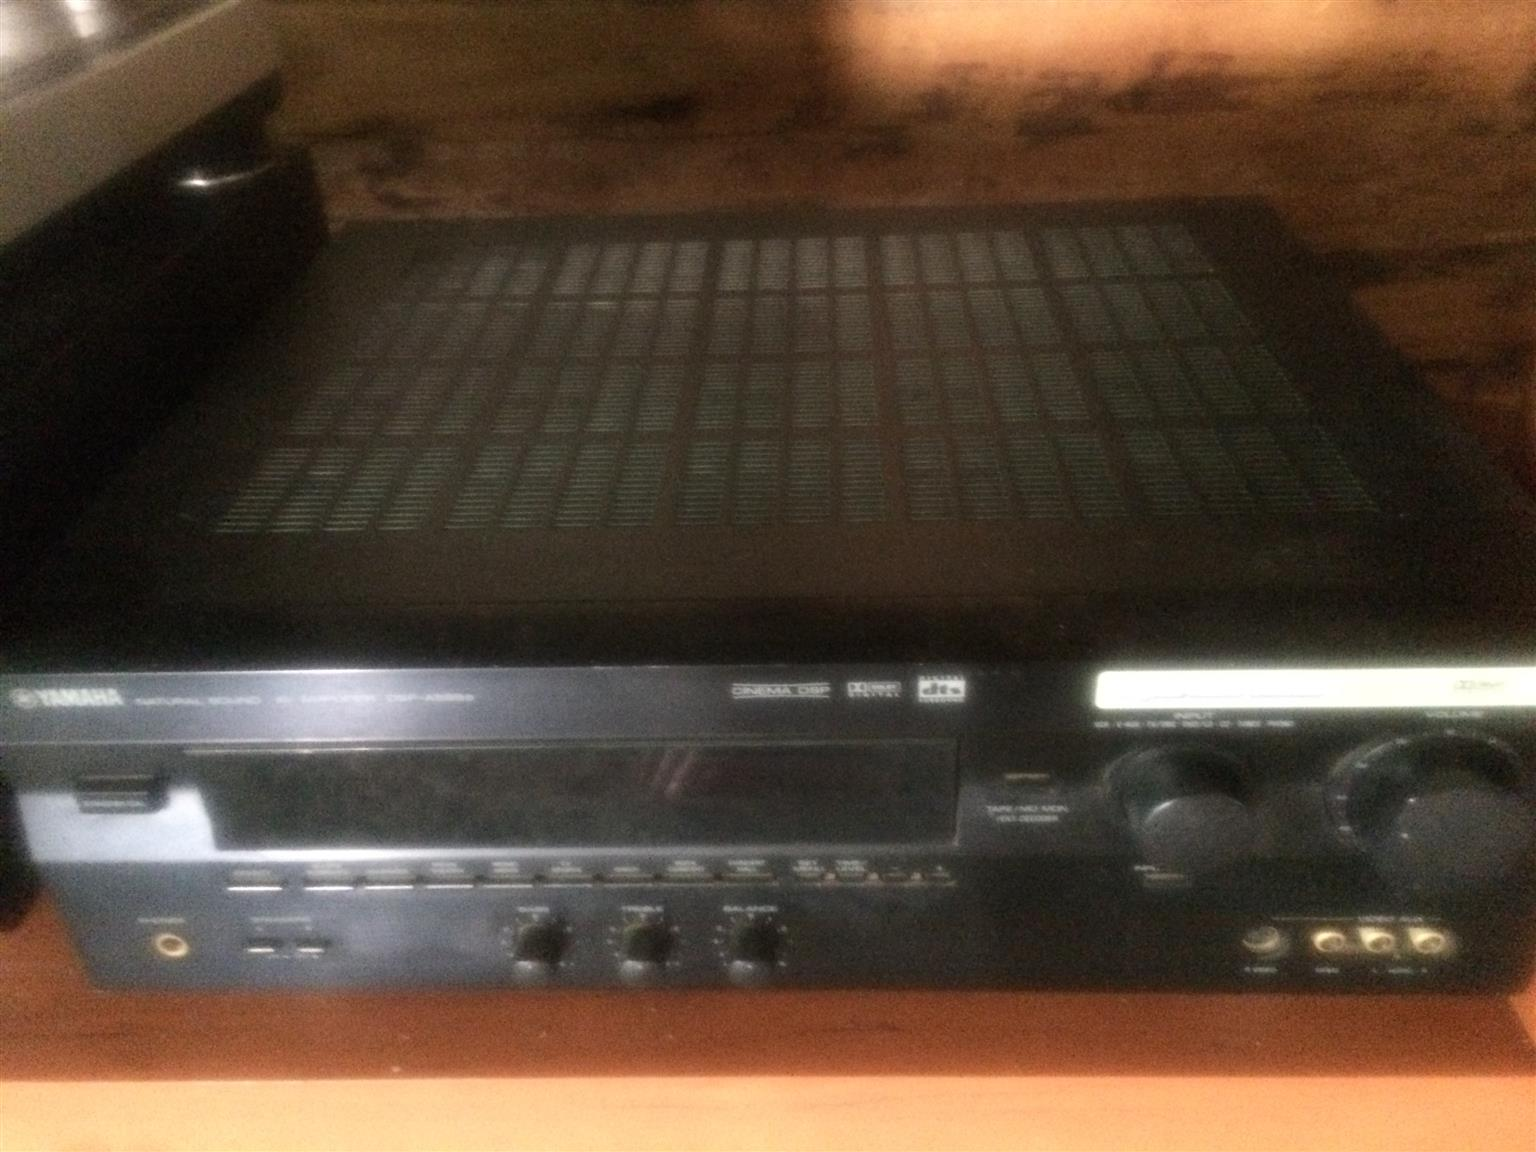 Yamaha receiver for sale